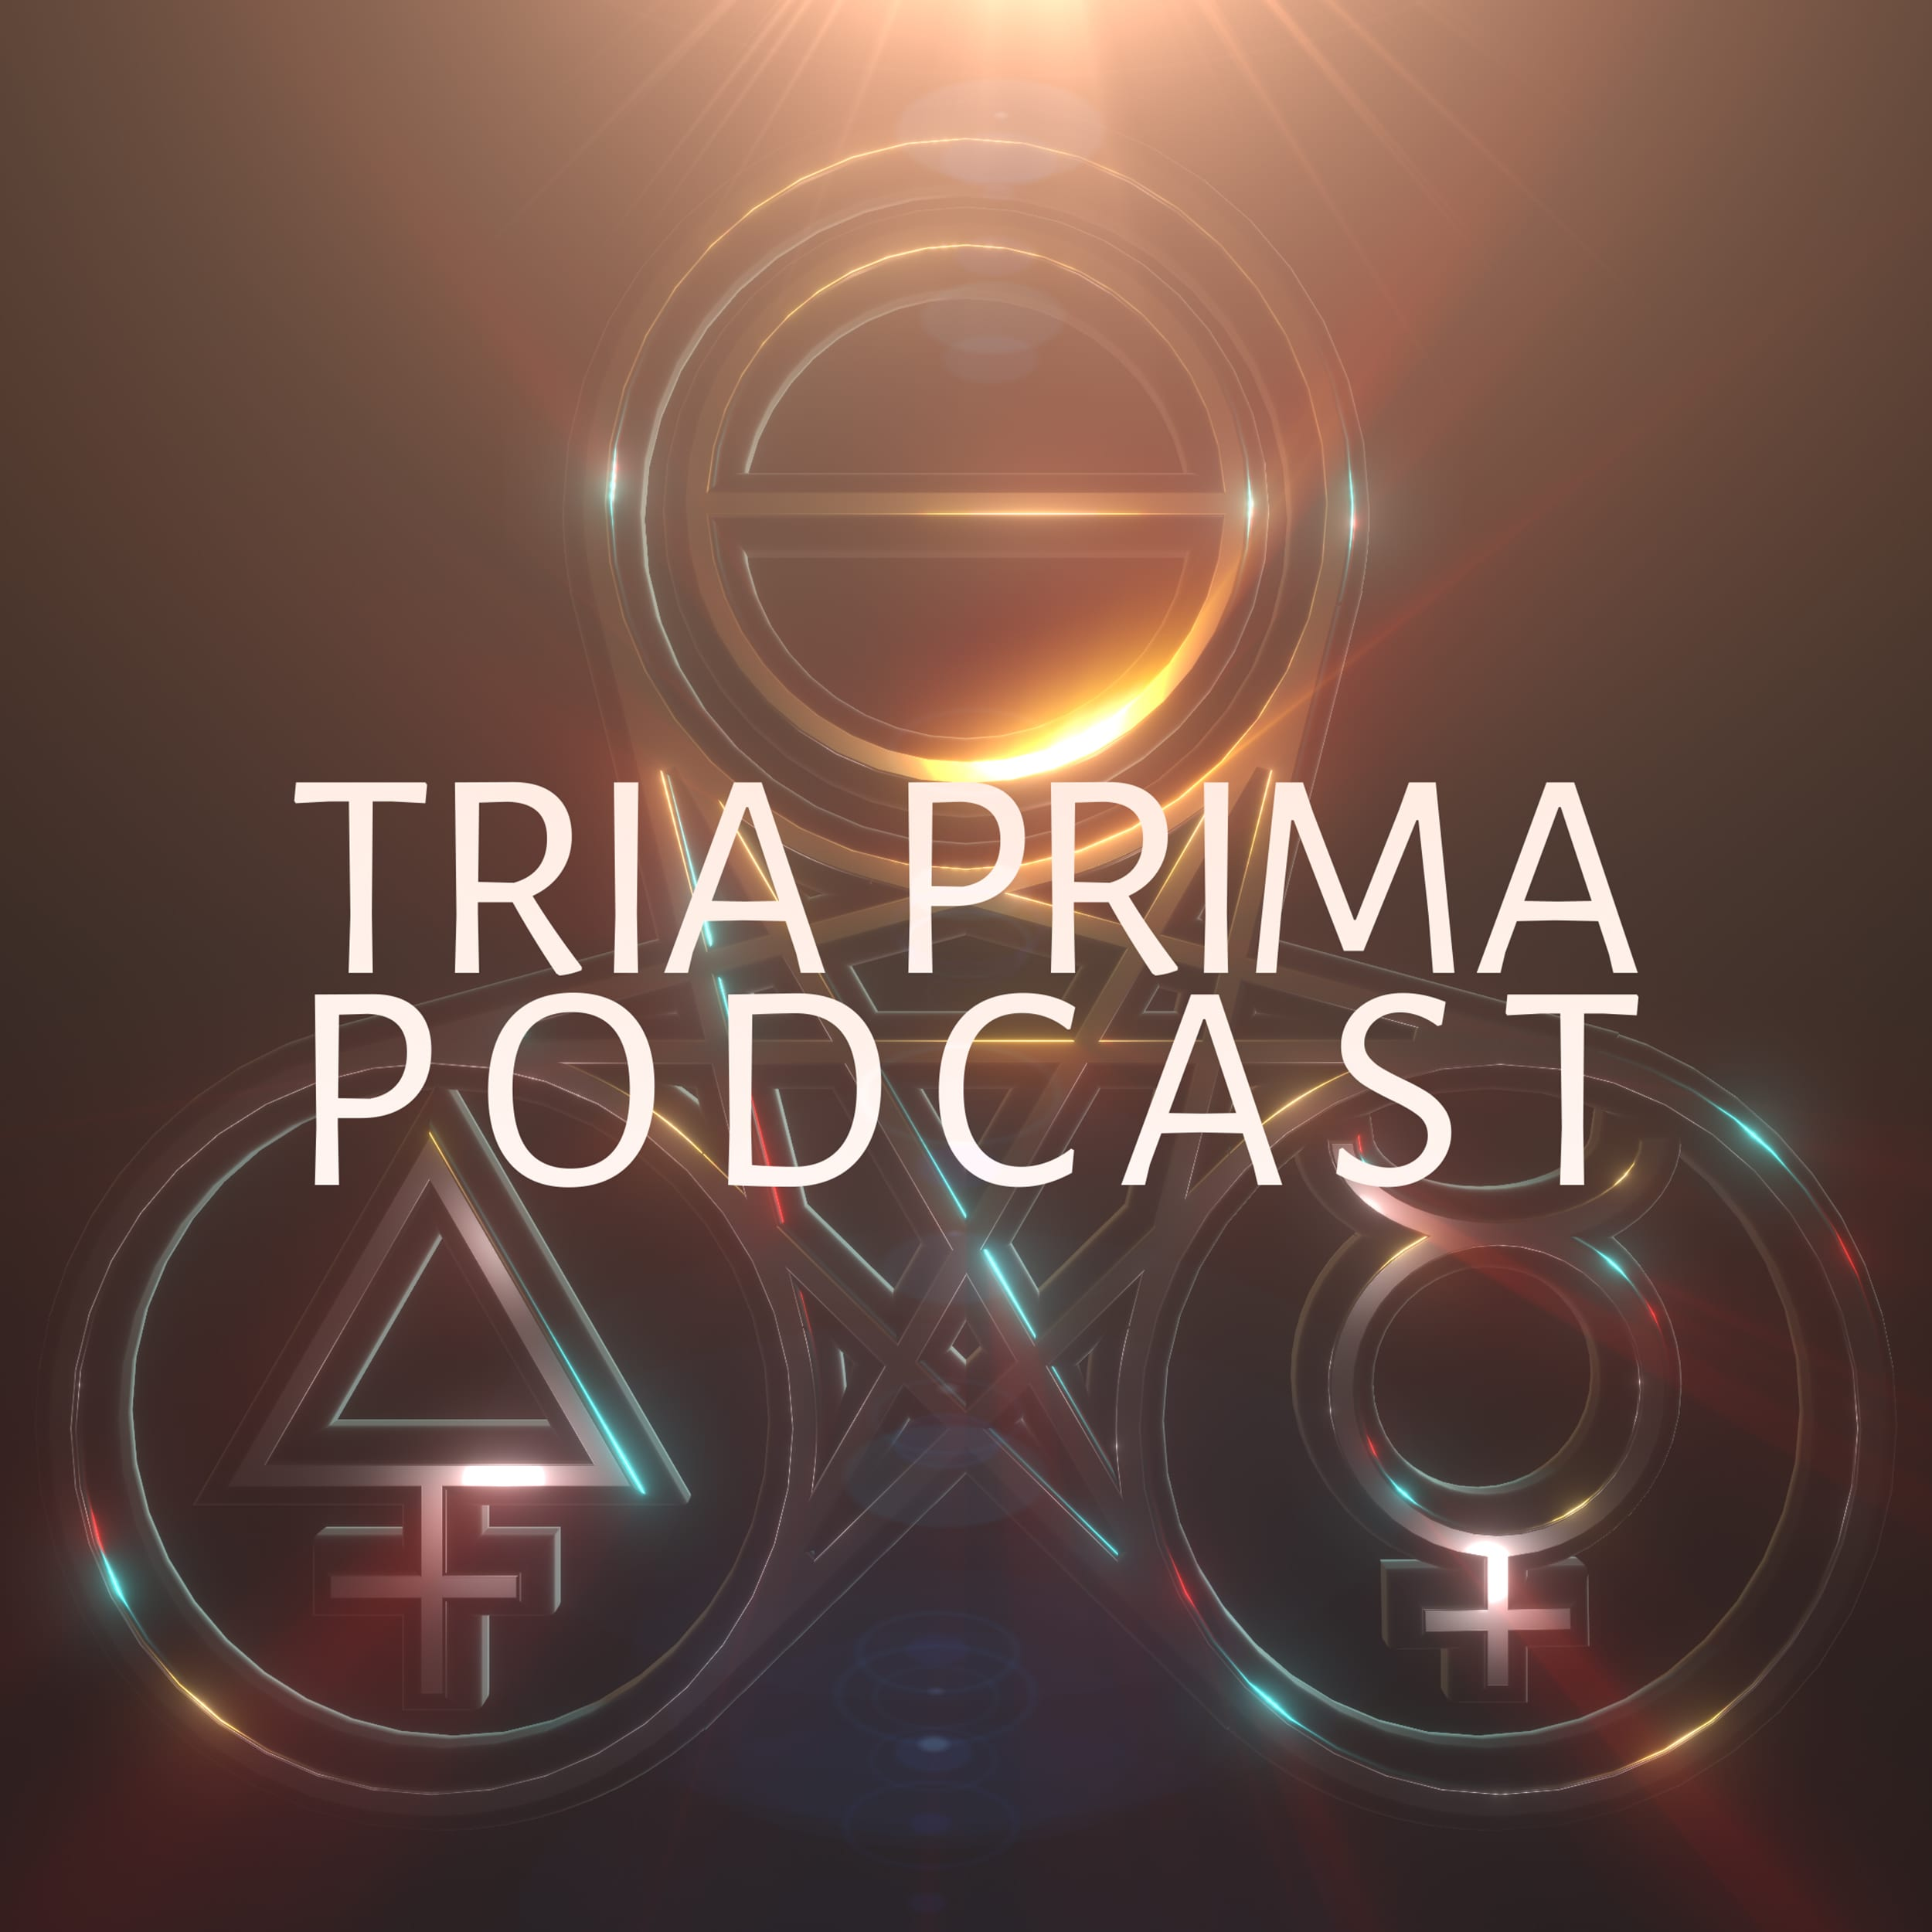 Tria Prima Podcast